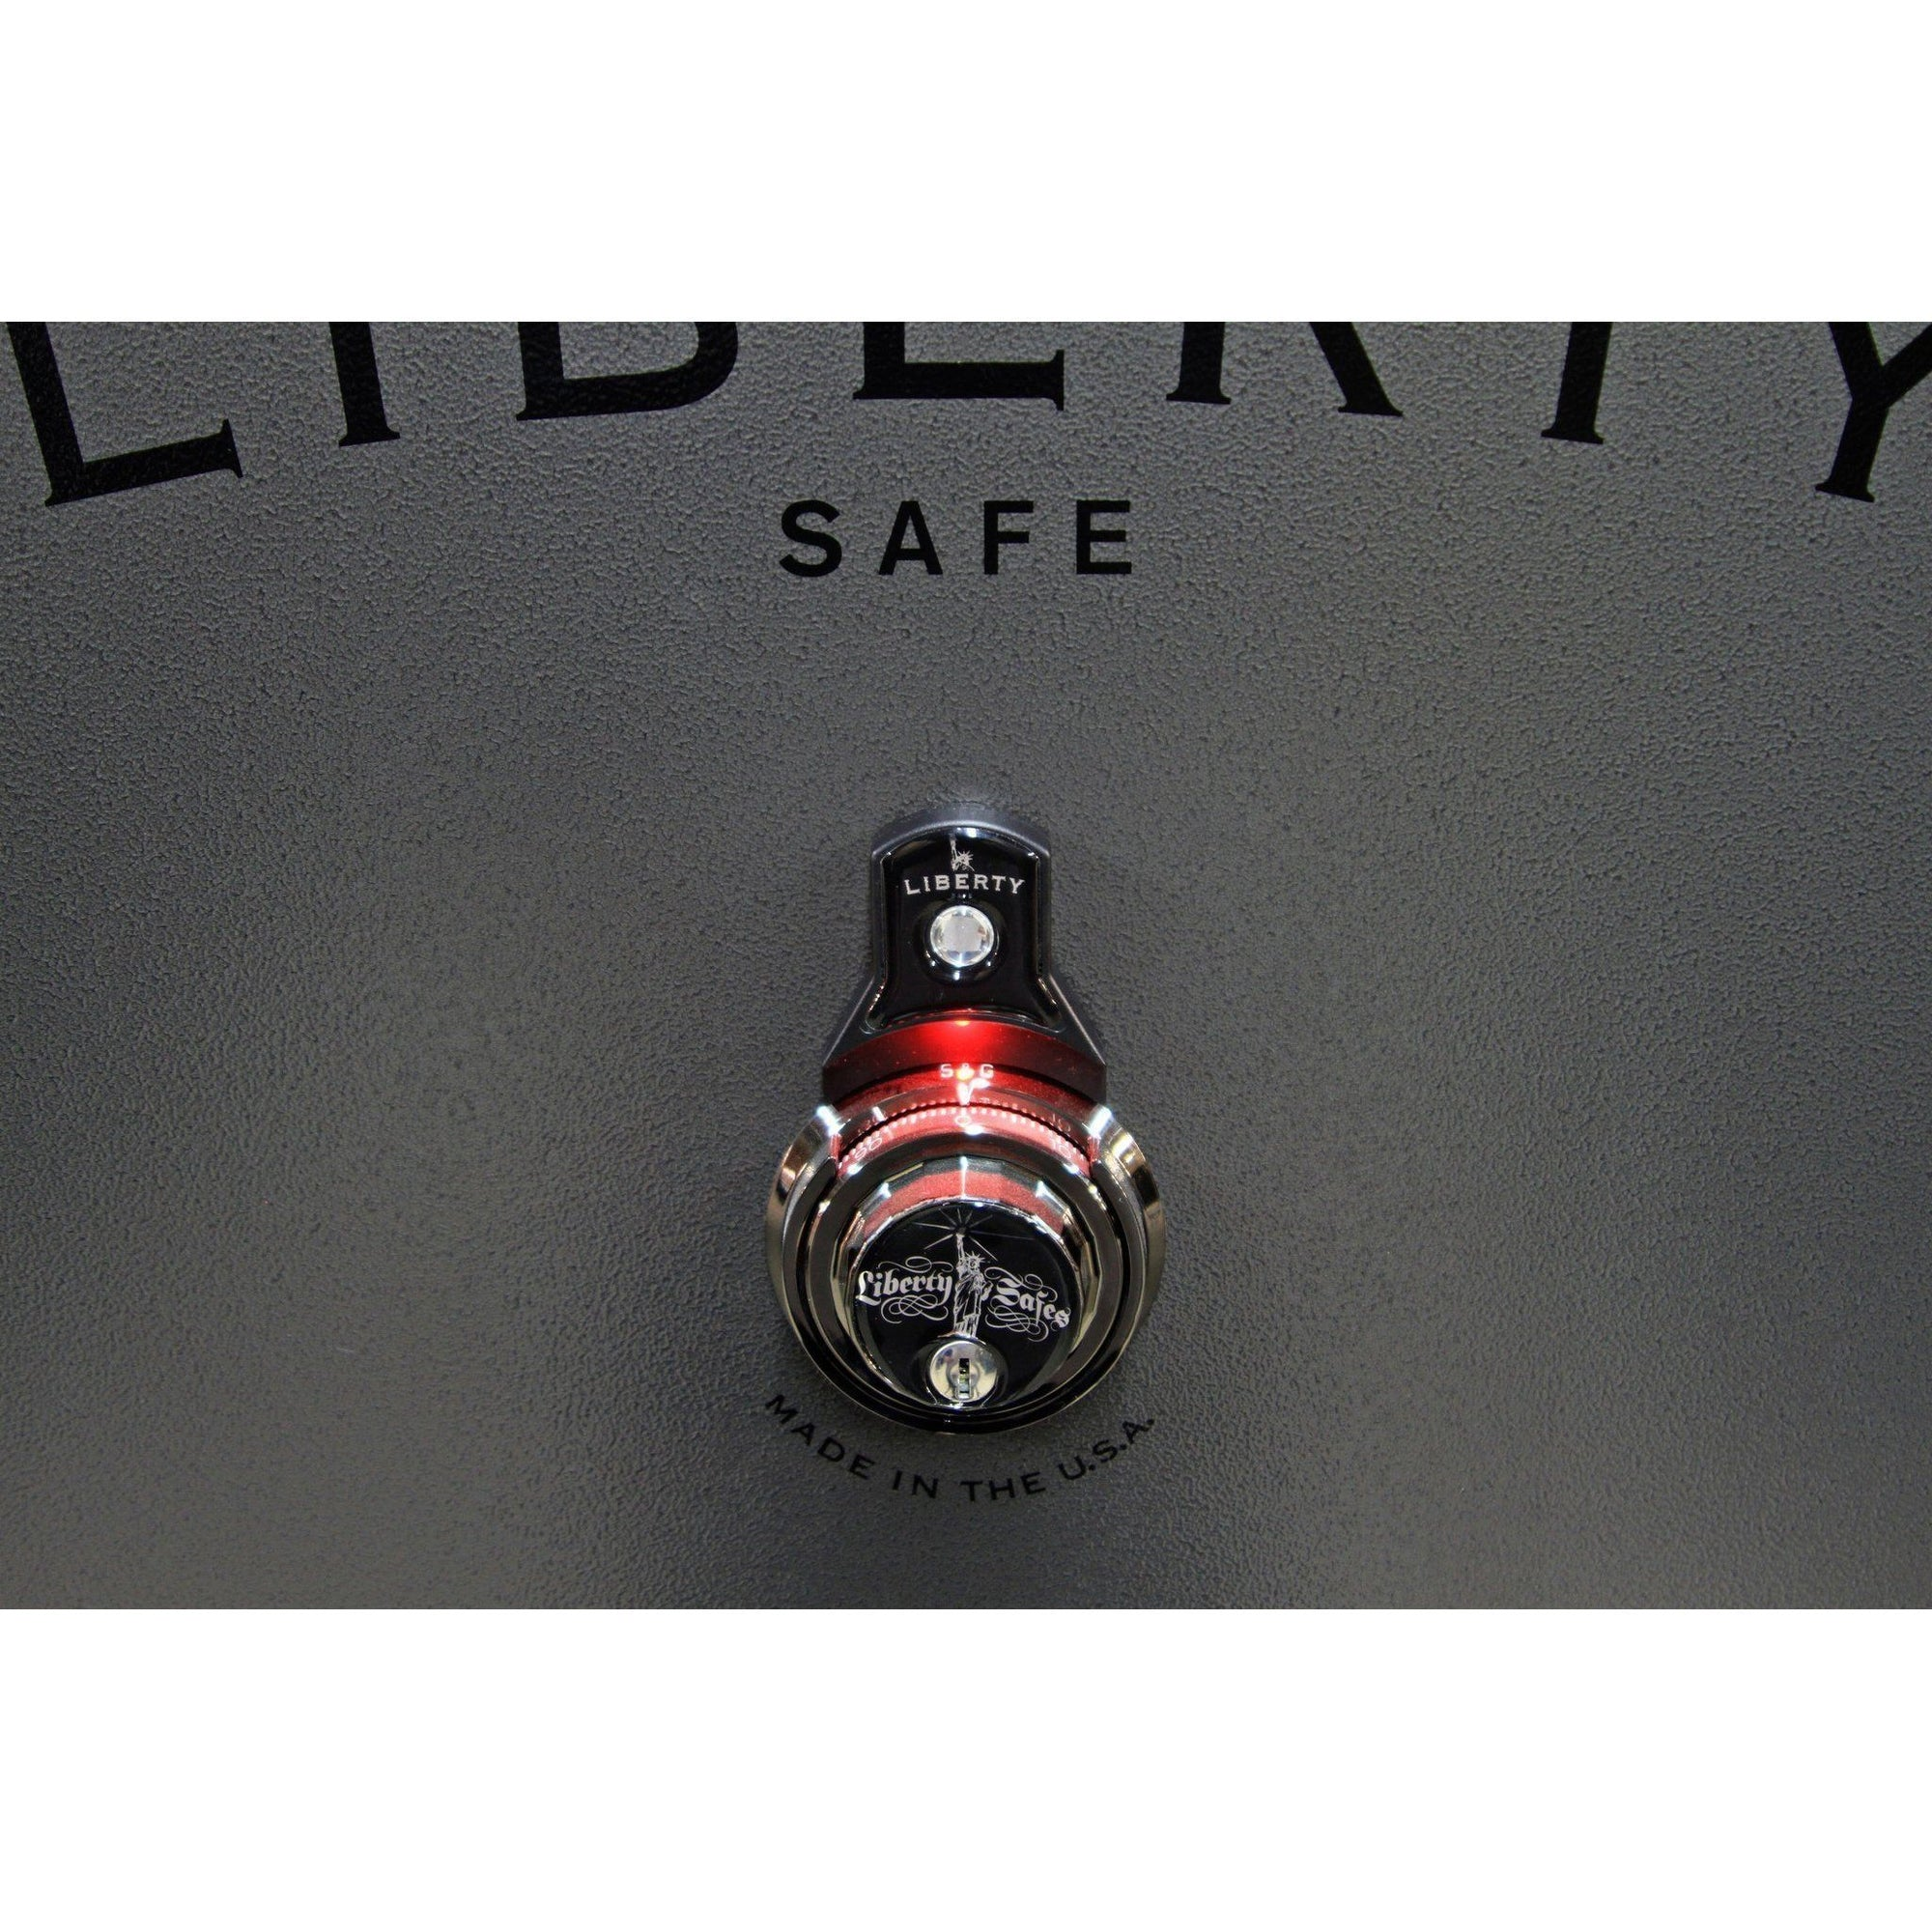 Liberty Safe-accessory-lights-lock-light-dial-lock